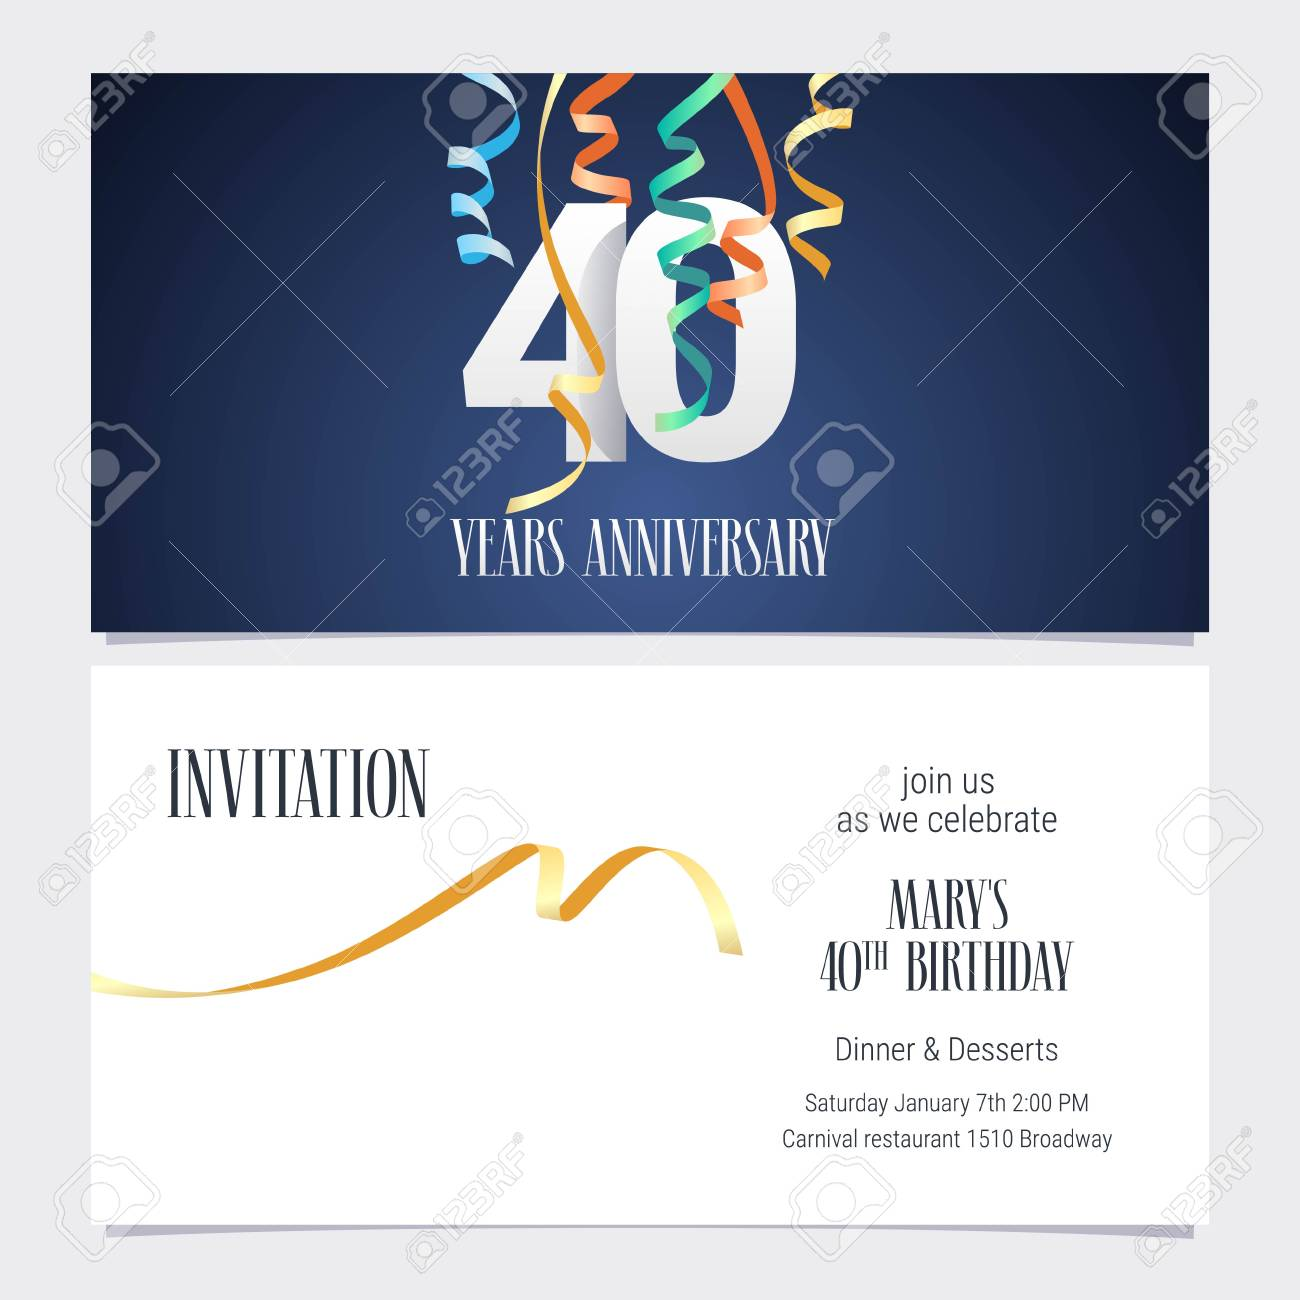 40 Years Anniversary Invitation To Celebrate The Event Vector Illustration Design Template Element With Number